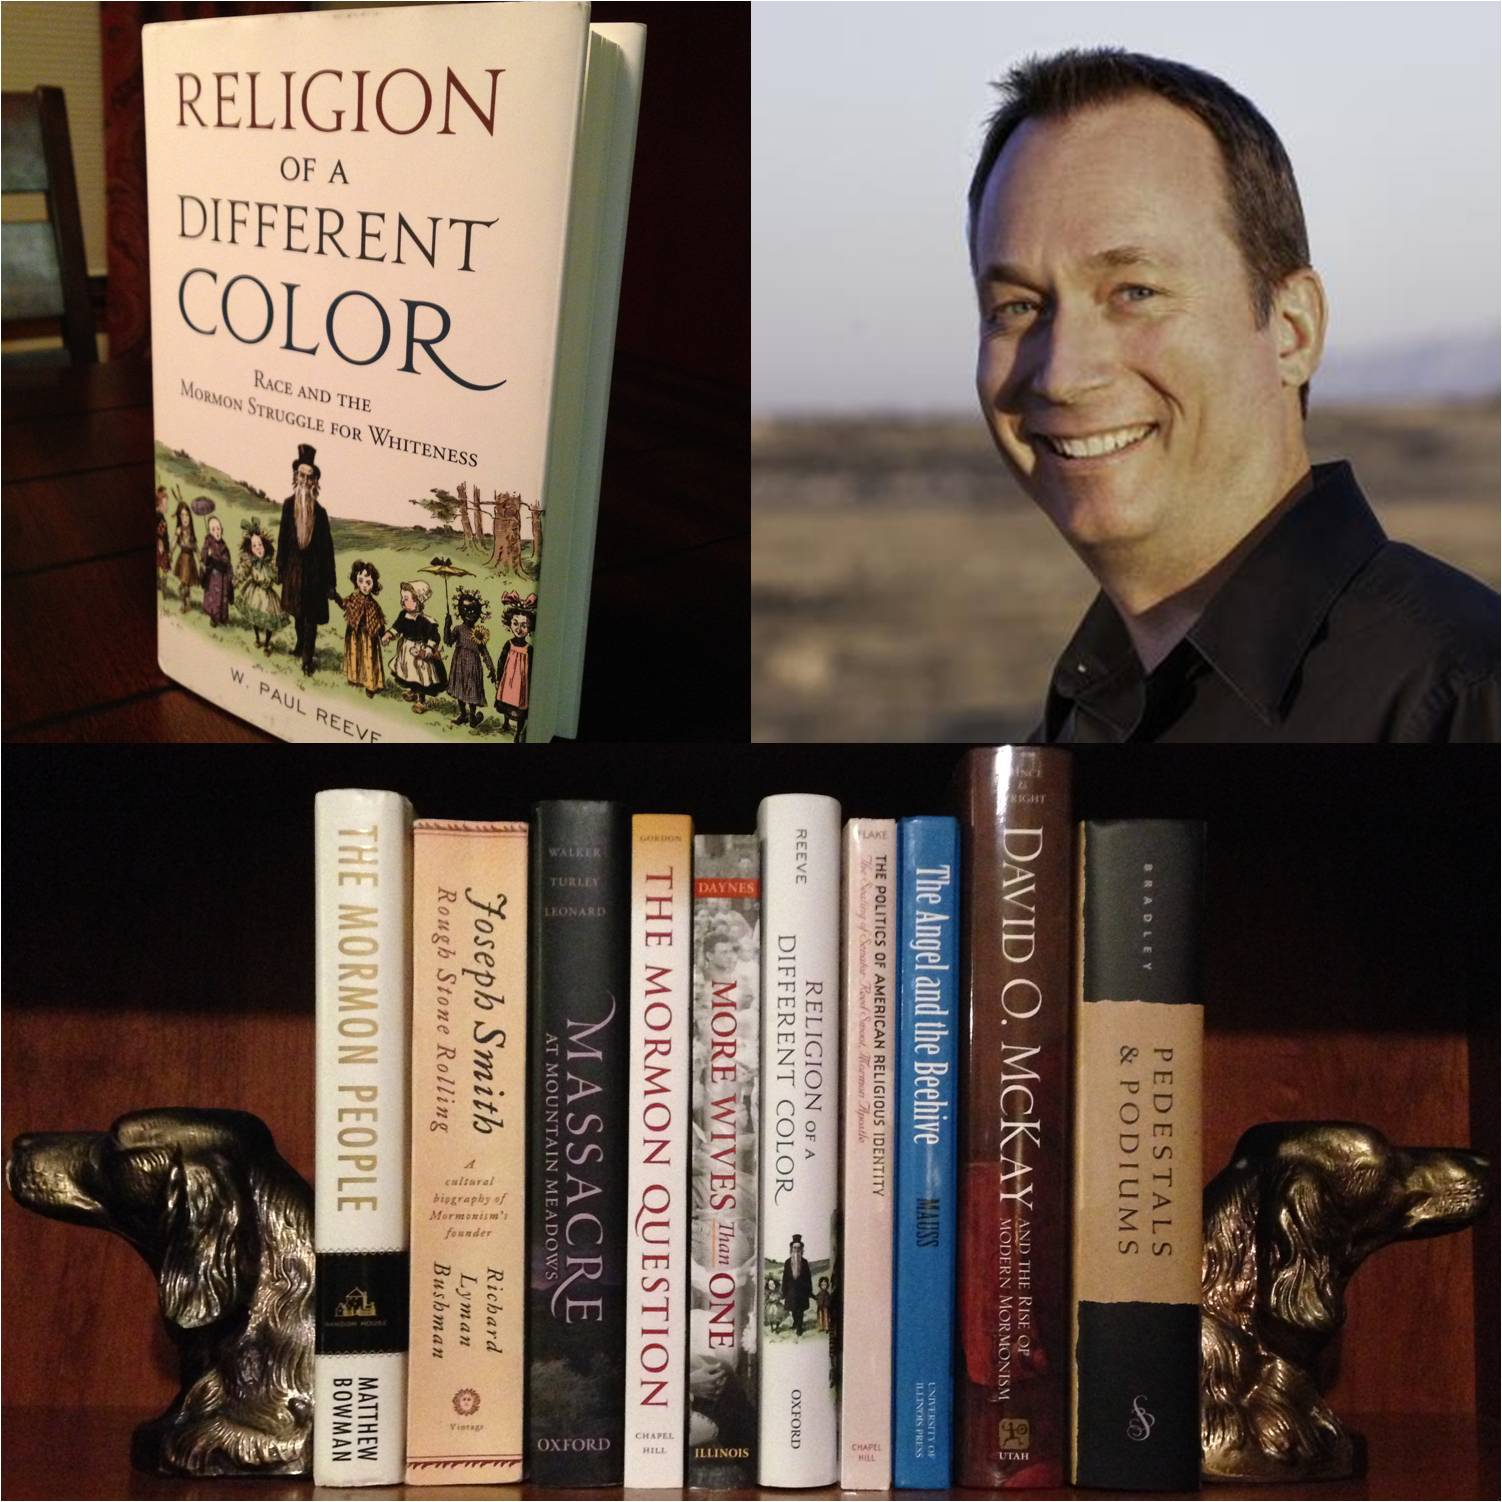 69: Top Ten Books on Mormon History – Religion of a Different Color